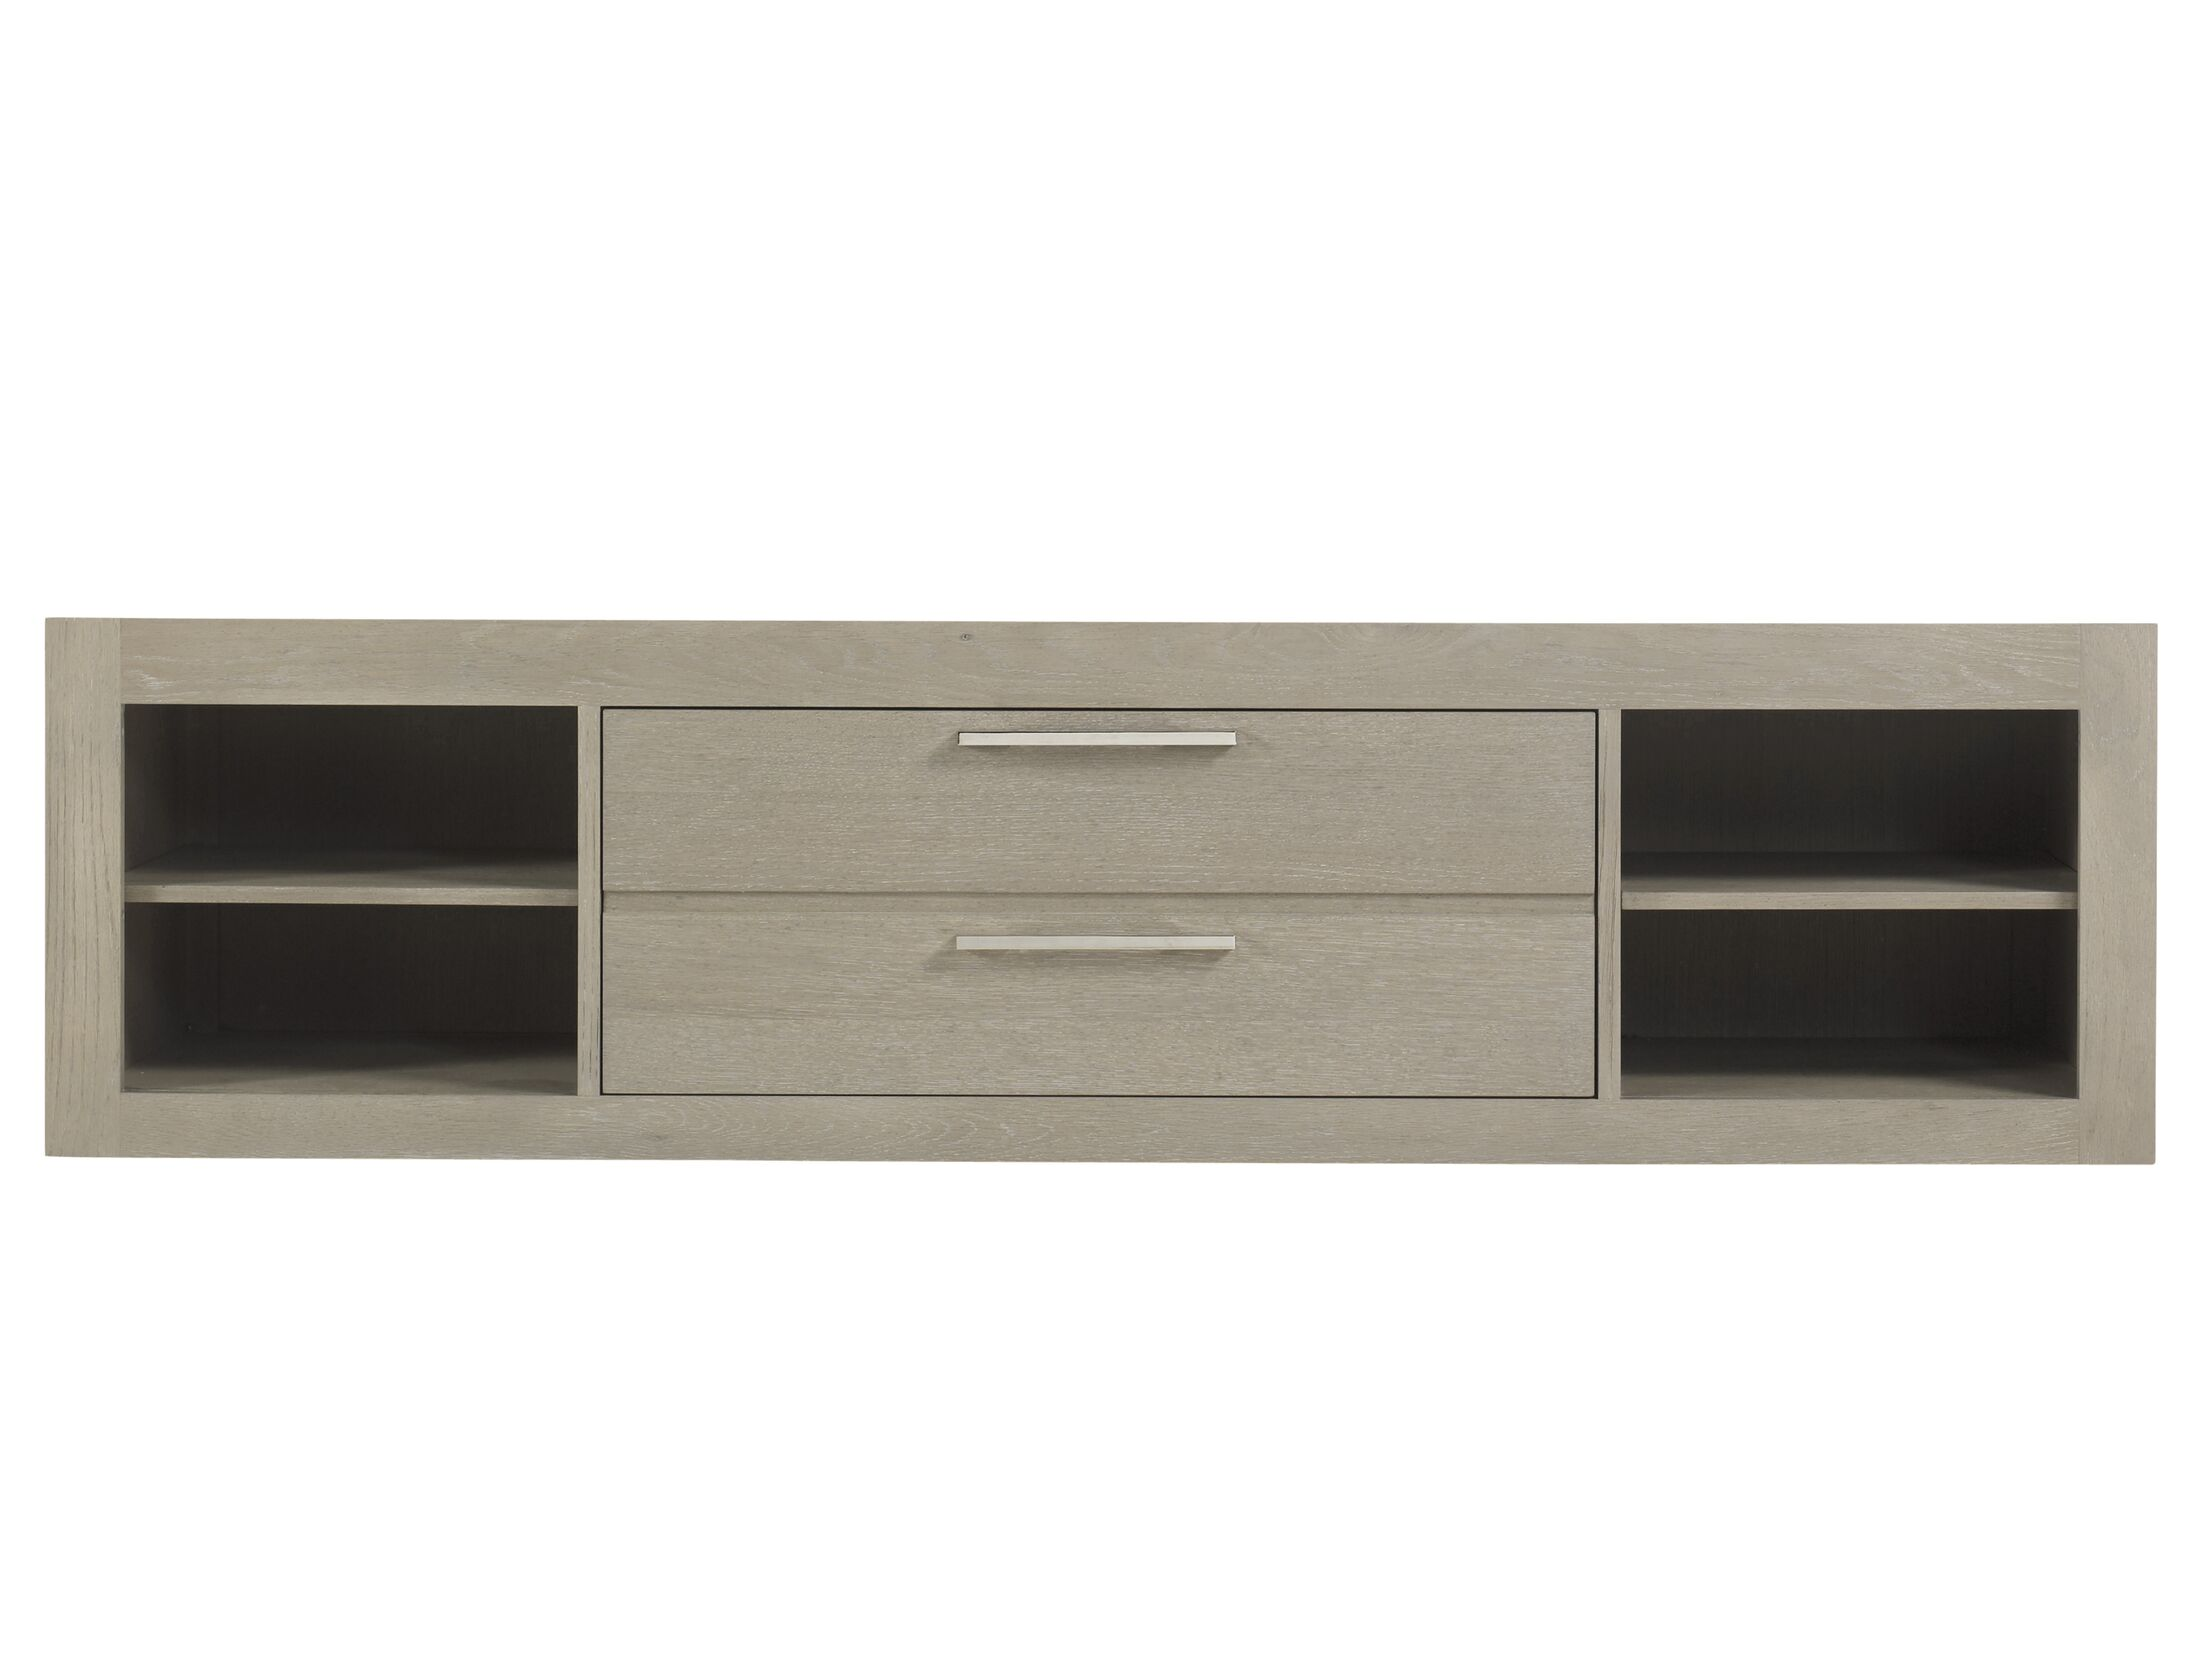 Leland Underbed Storage Drawer with Side Rail